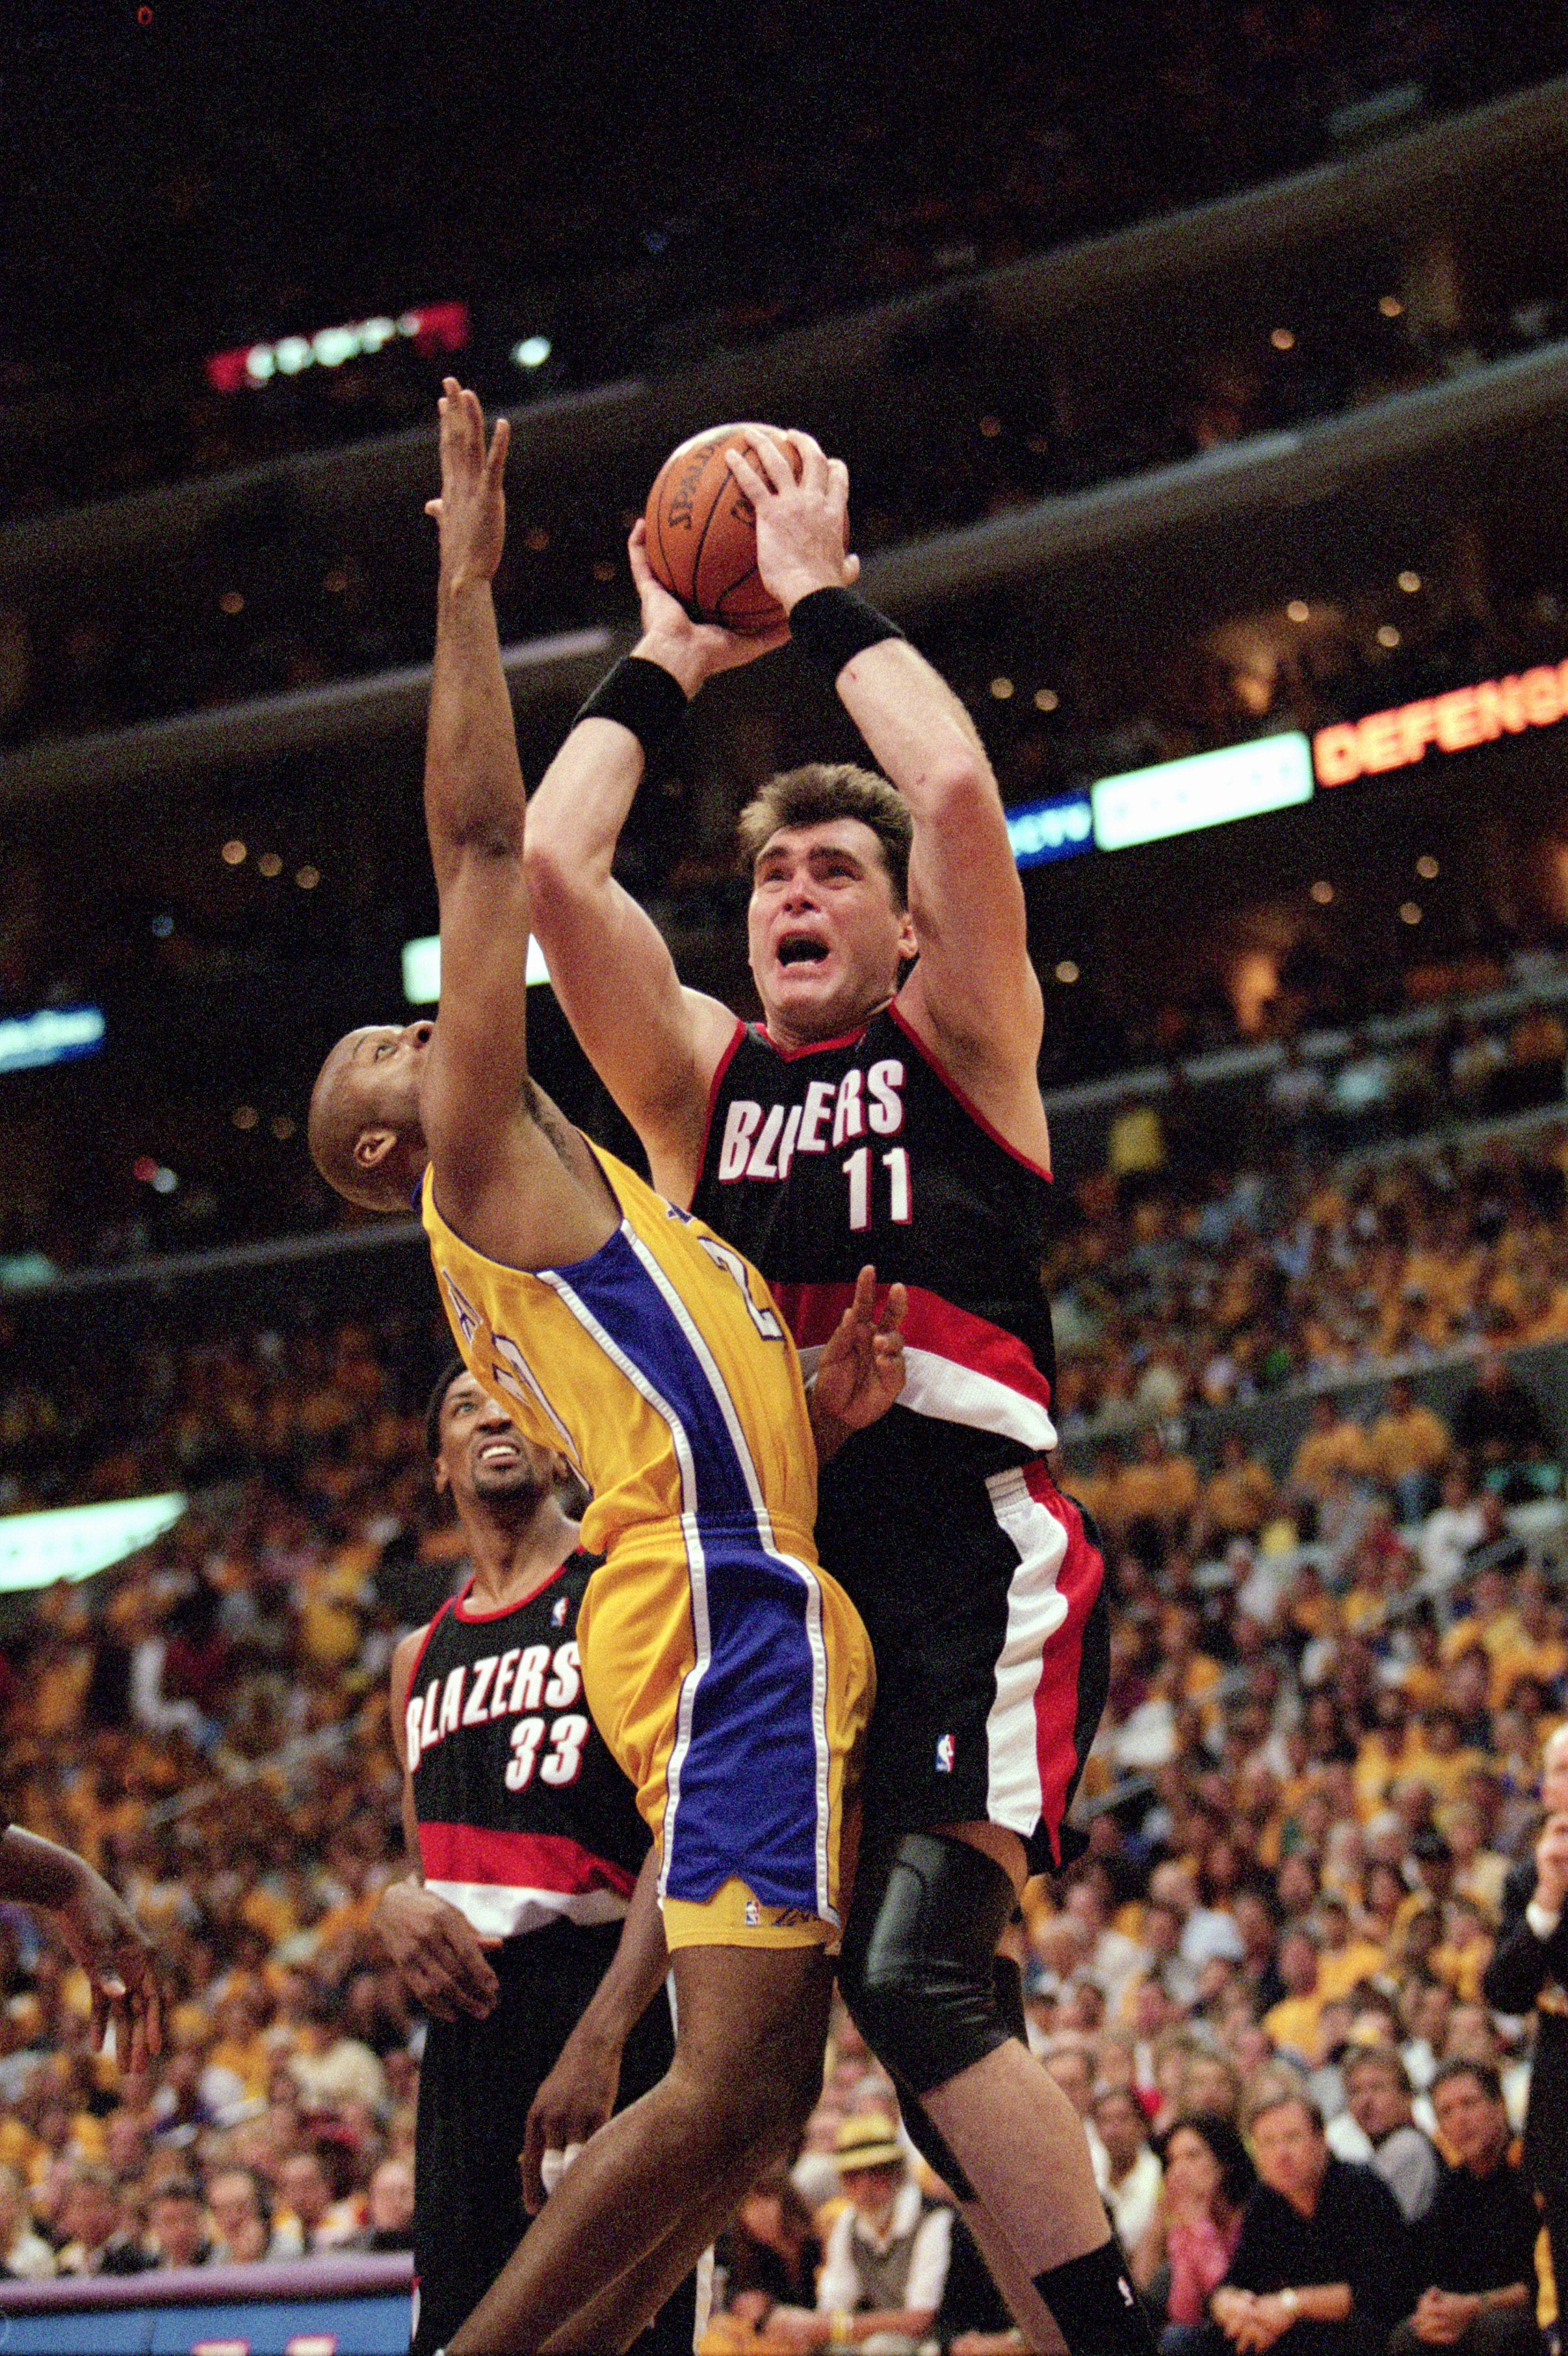 LOS ANGELES - JUNE 4:  Center Arvydas Sabonis #11 of the Portland Trail Blazers puts up a shot pressured by Brian Shaw #20 of the Los Angeles Lakers during Game 7 of the Western Conference Finals at Staples Center on June 4, 2000 in Los Angeles, Californi